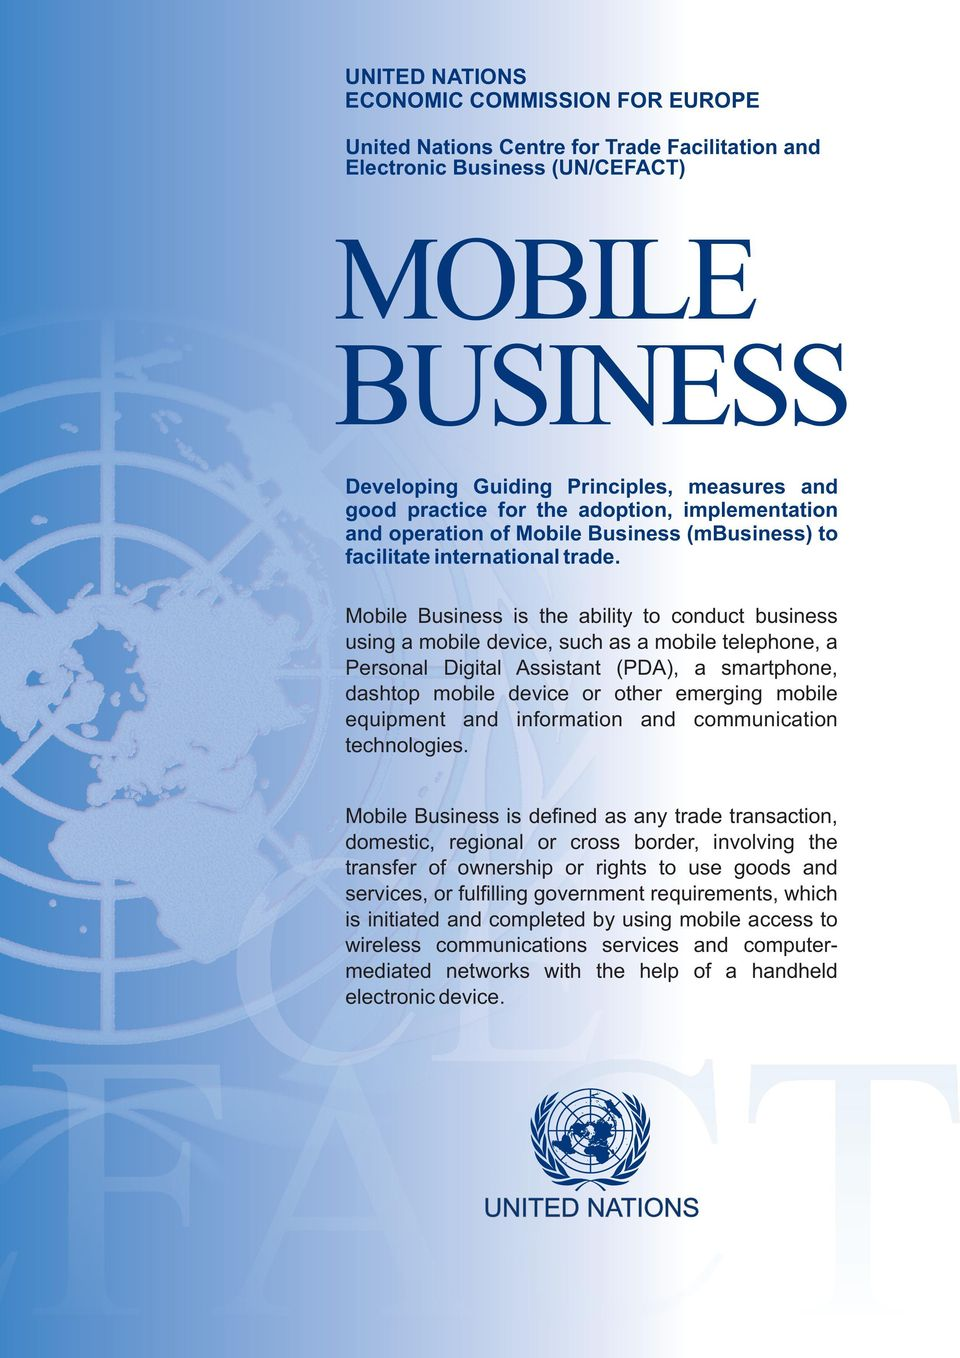 Mobile Business is the ability to conduct business using a mobile device, such as a mobile telephone, a Personal Digital Assistant (PDA), a smartphone, dashtop mobile device or other emerging mobile